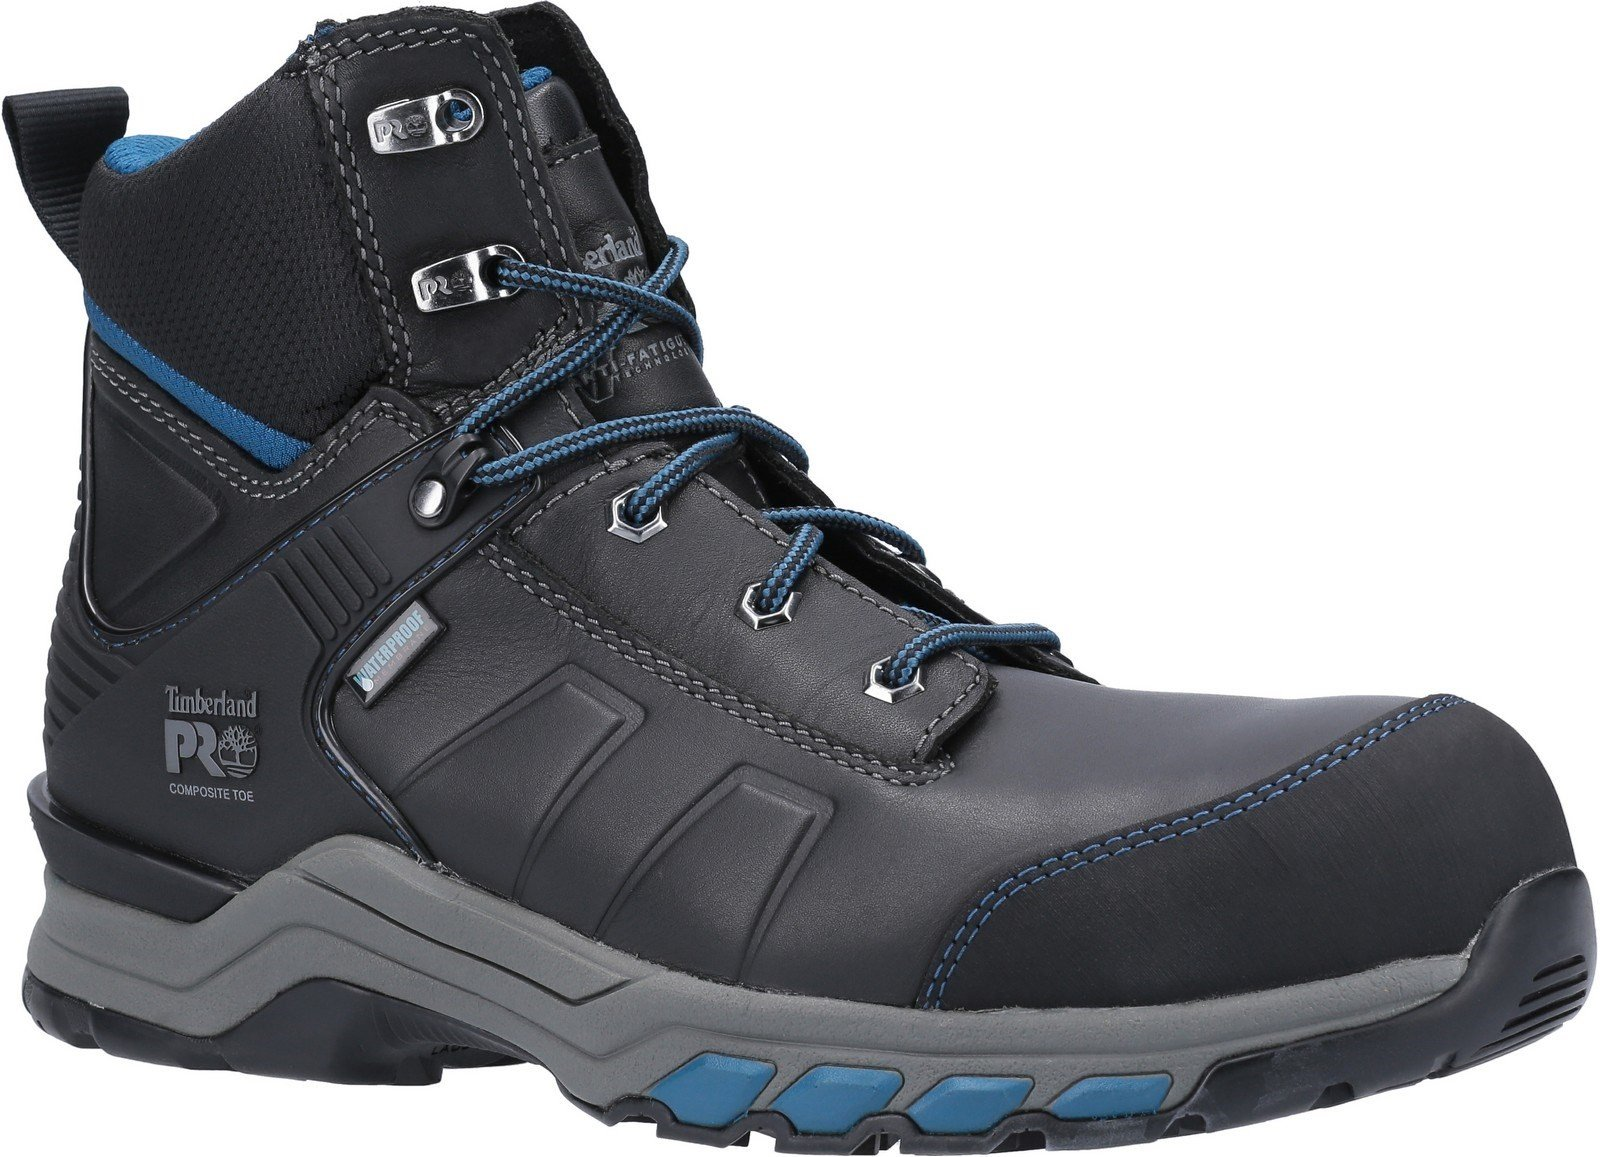 Timberland Pro Men's Hypercharge Safety Toe Work Boot Various Colours 30948 - Black/Teal 6